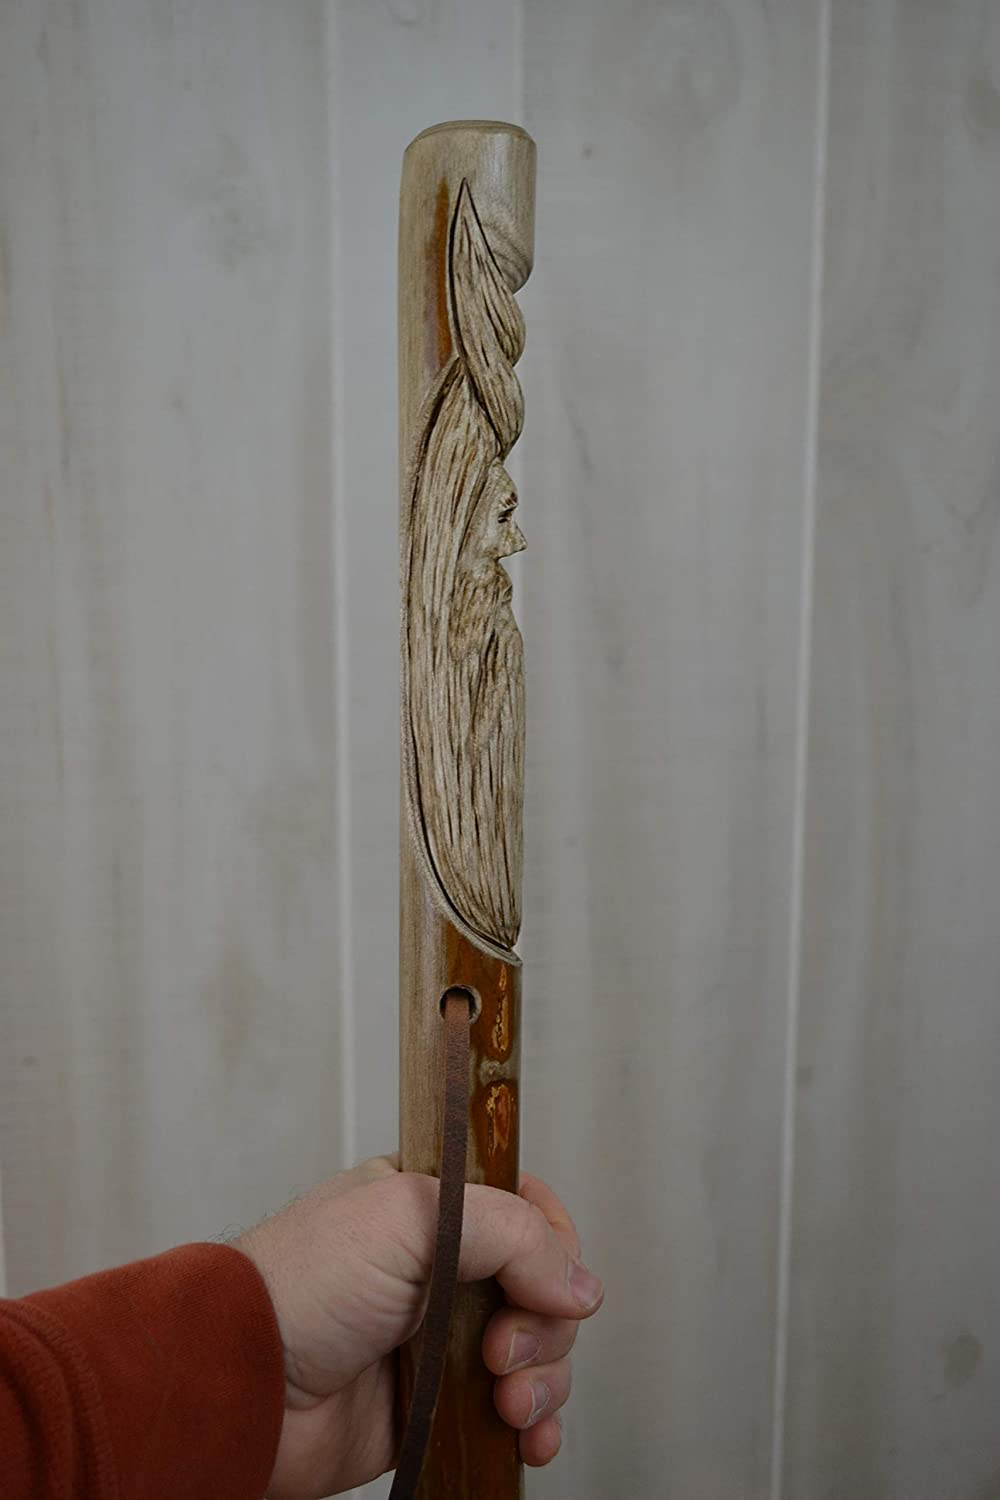 Wood Spirit Carving on 60 Walking Stick Kiln Dried by Creation Carvings #1340 Sassafras Hand Carved Hiking Staff